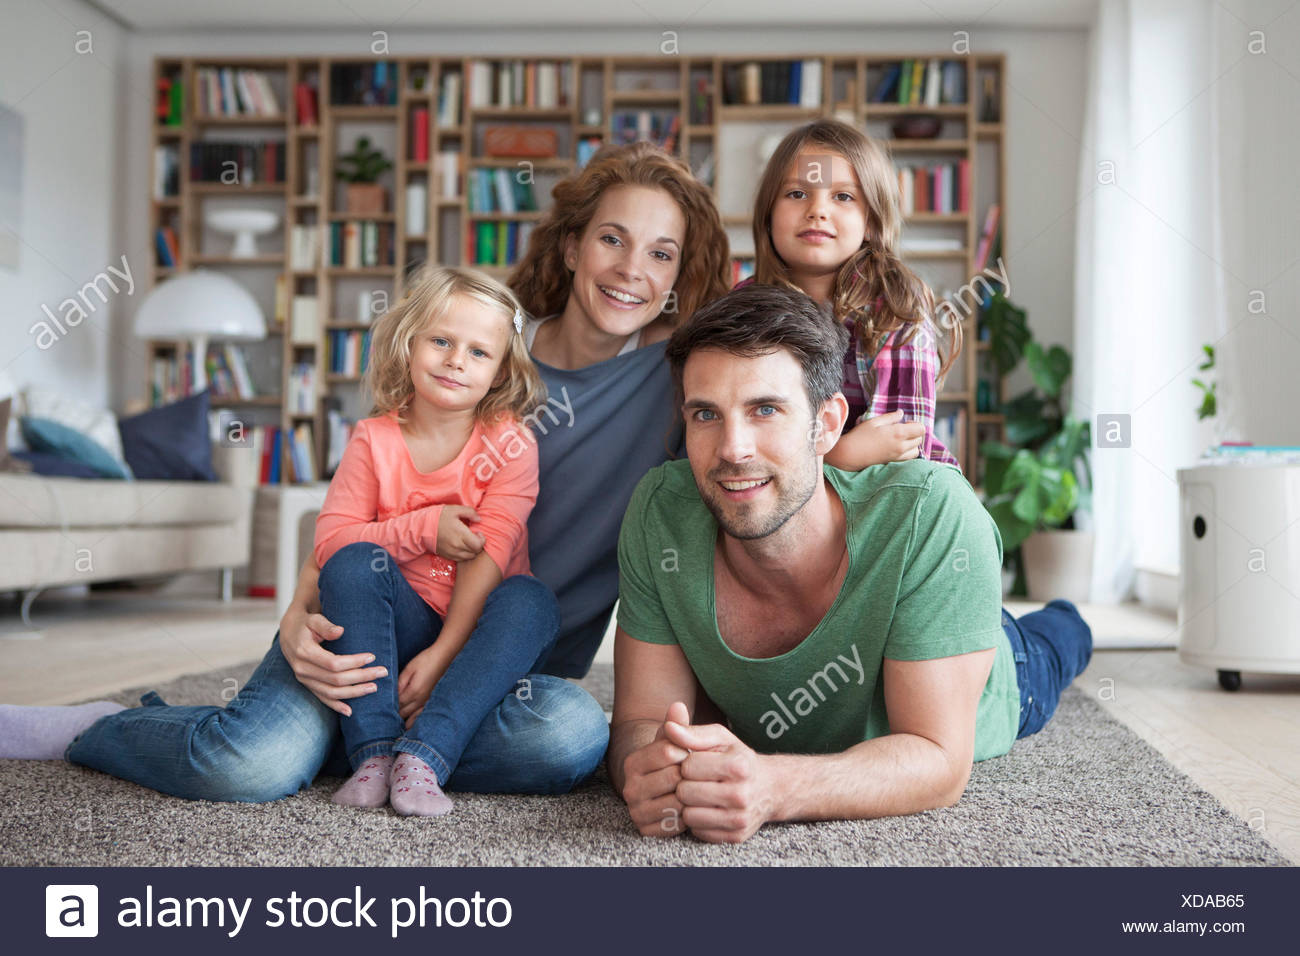 Family portrait of family with two little girls on the floor of living room - Stock Image